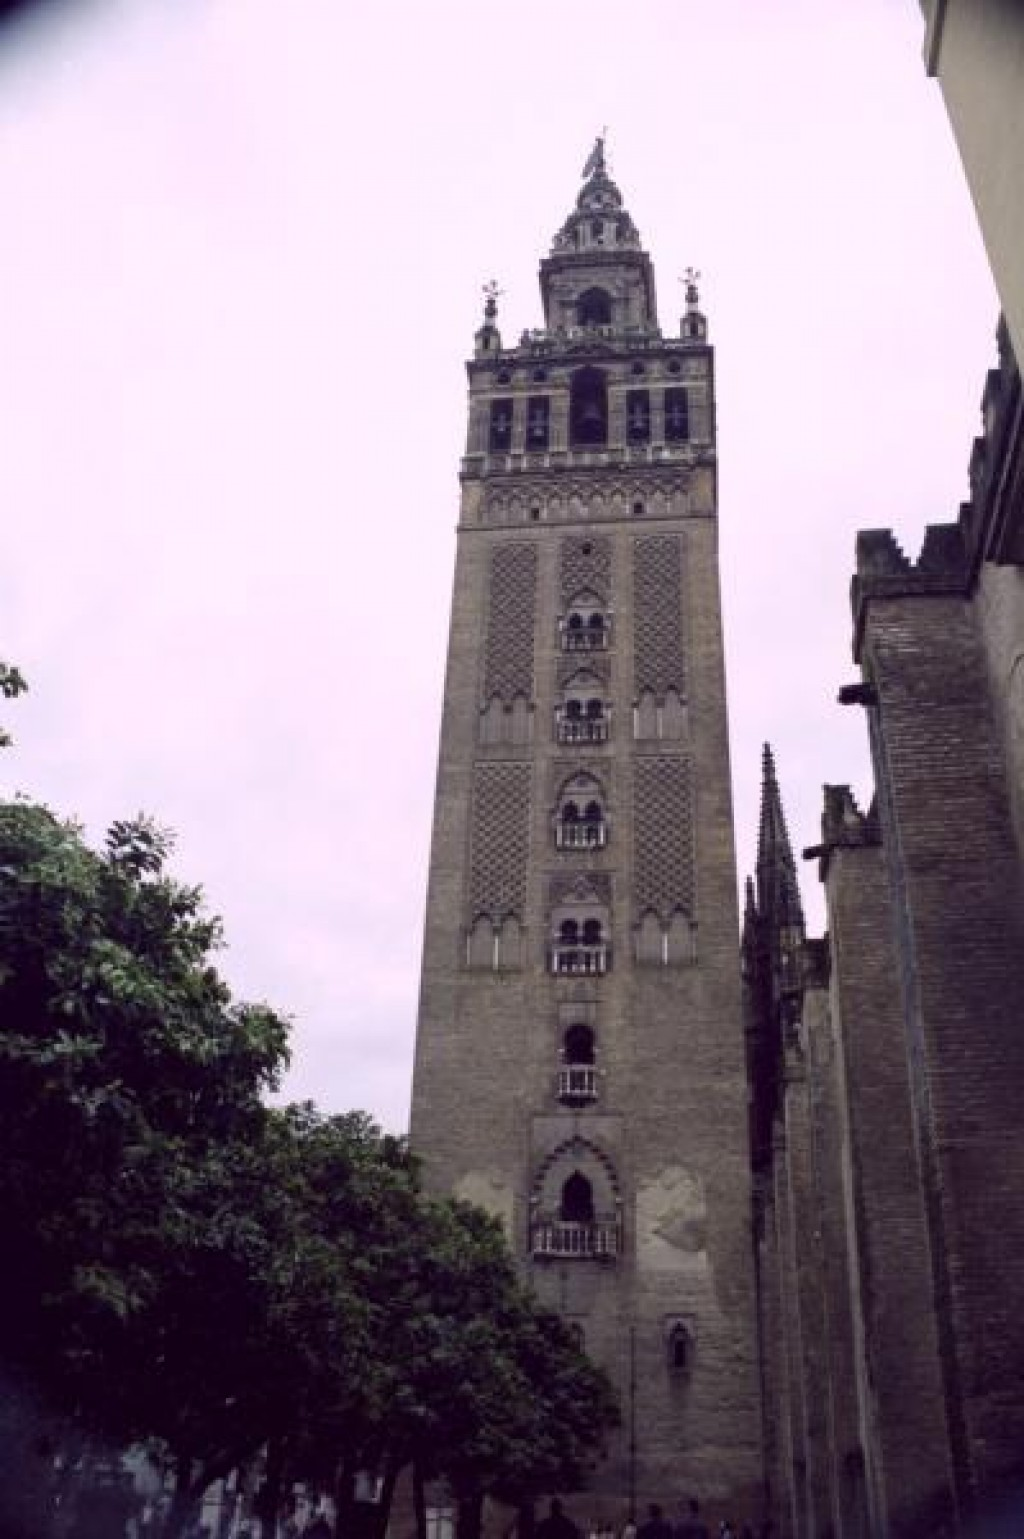 This is La Giralda, the minaret from the old mosque, built in 1198.